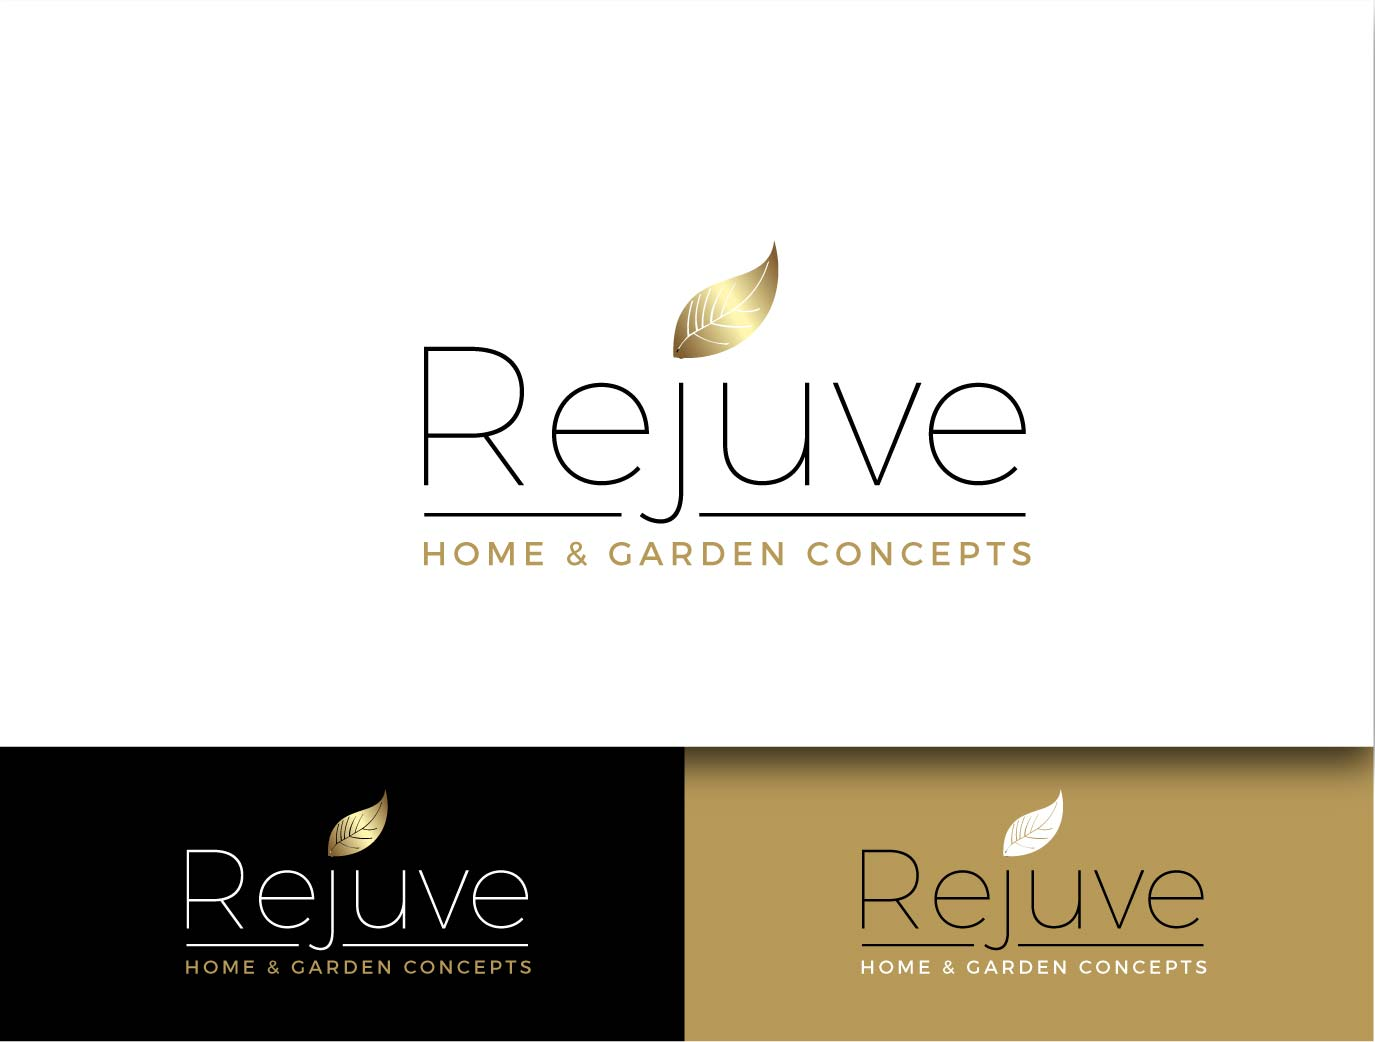 Rejuve Home and Garden logo by wonderland